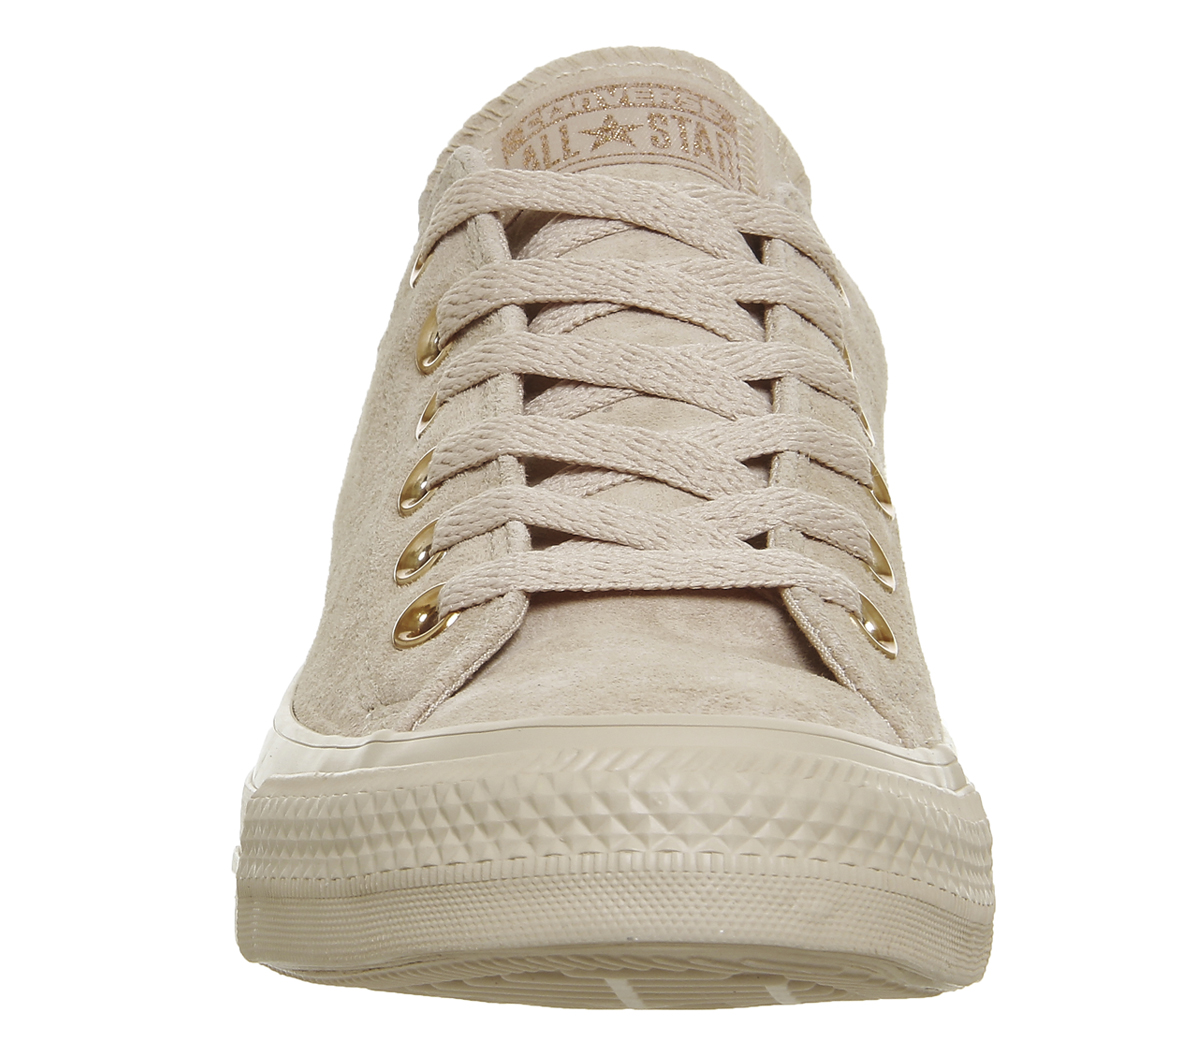 5b5deae0a1bae6 Sentinel Womens Converse All Star Low Leather BIO BEIGE VINTAGE WINE Trainers  Shoes